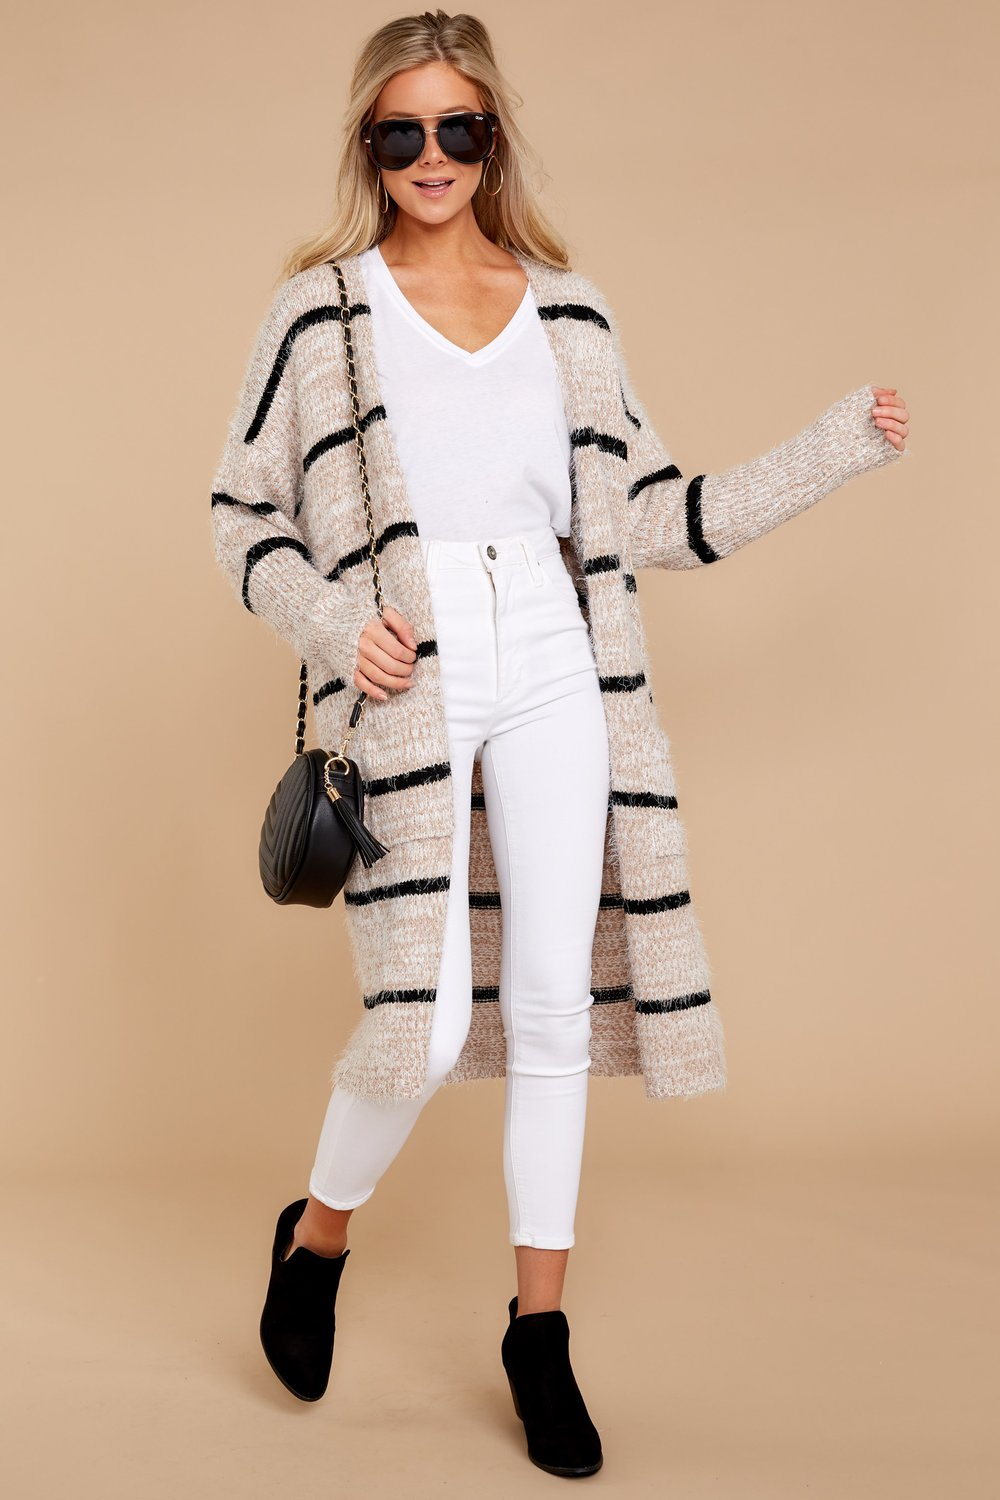 black and tan striped cardigan